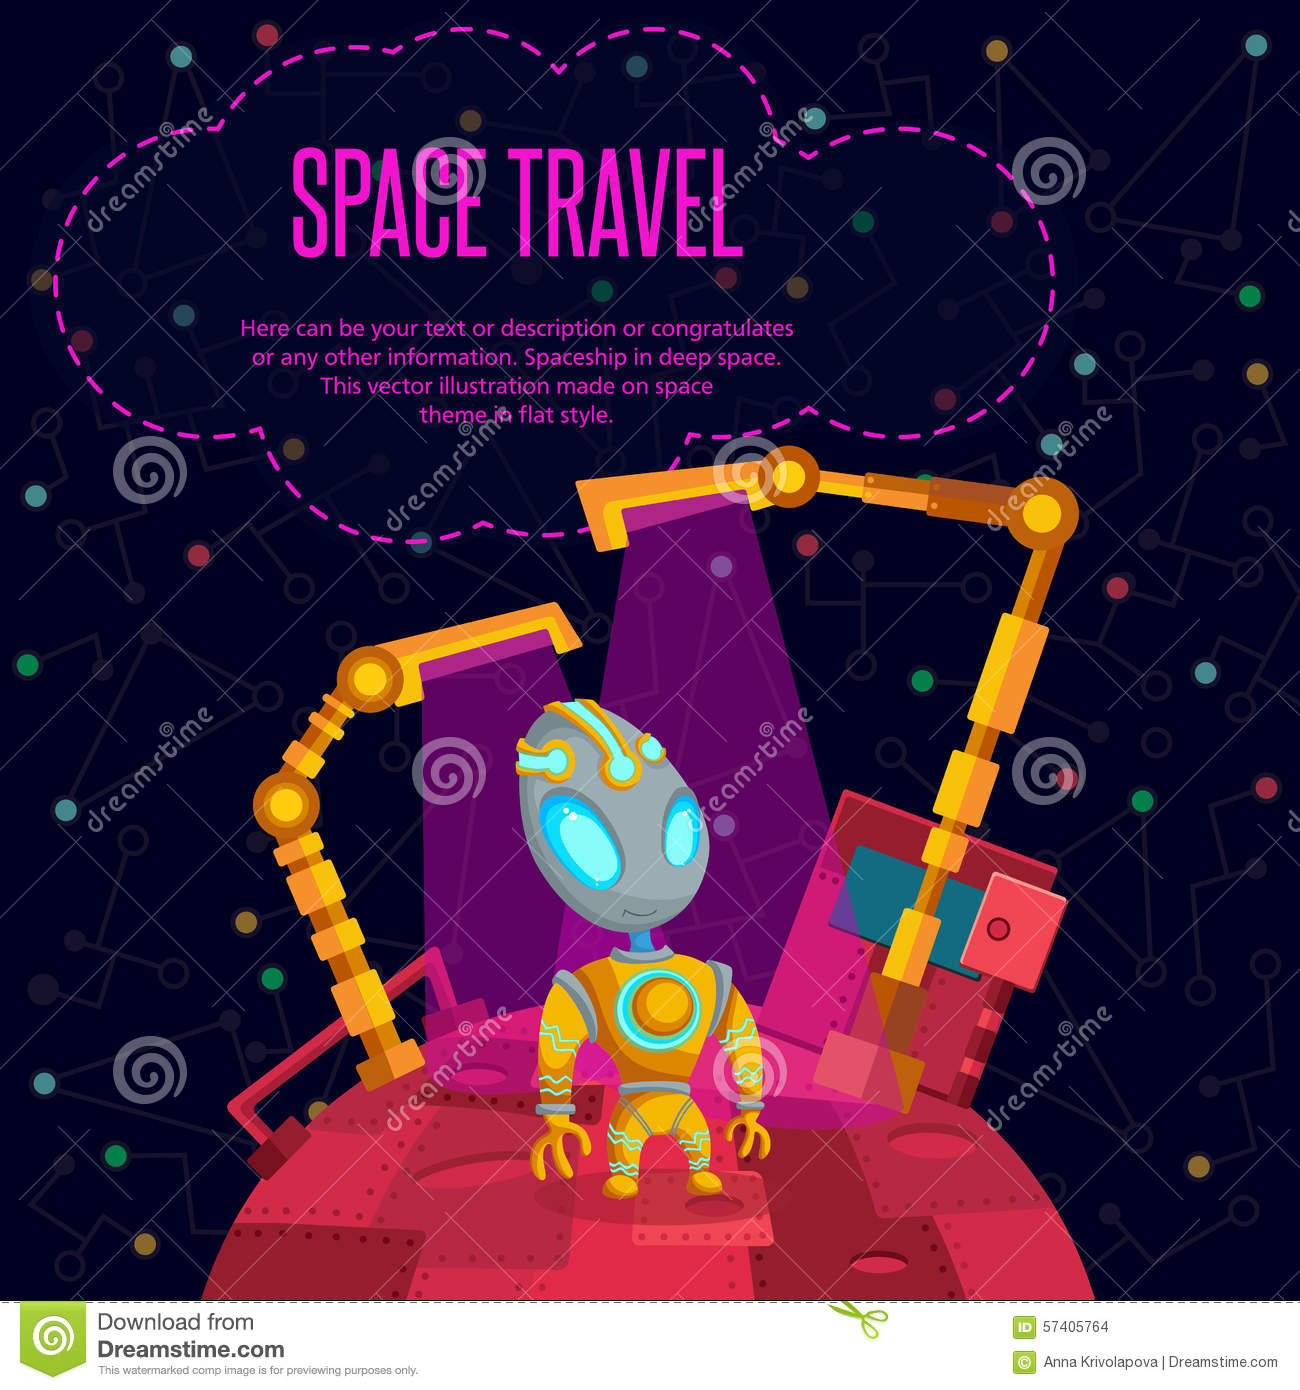 Space travel vector illustration in style flat for Outer space travel